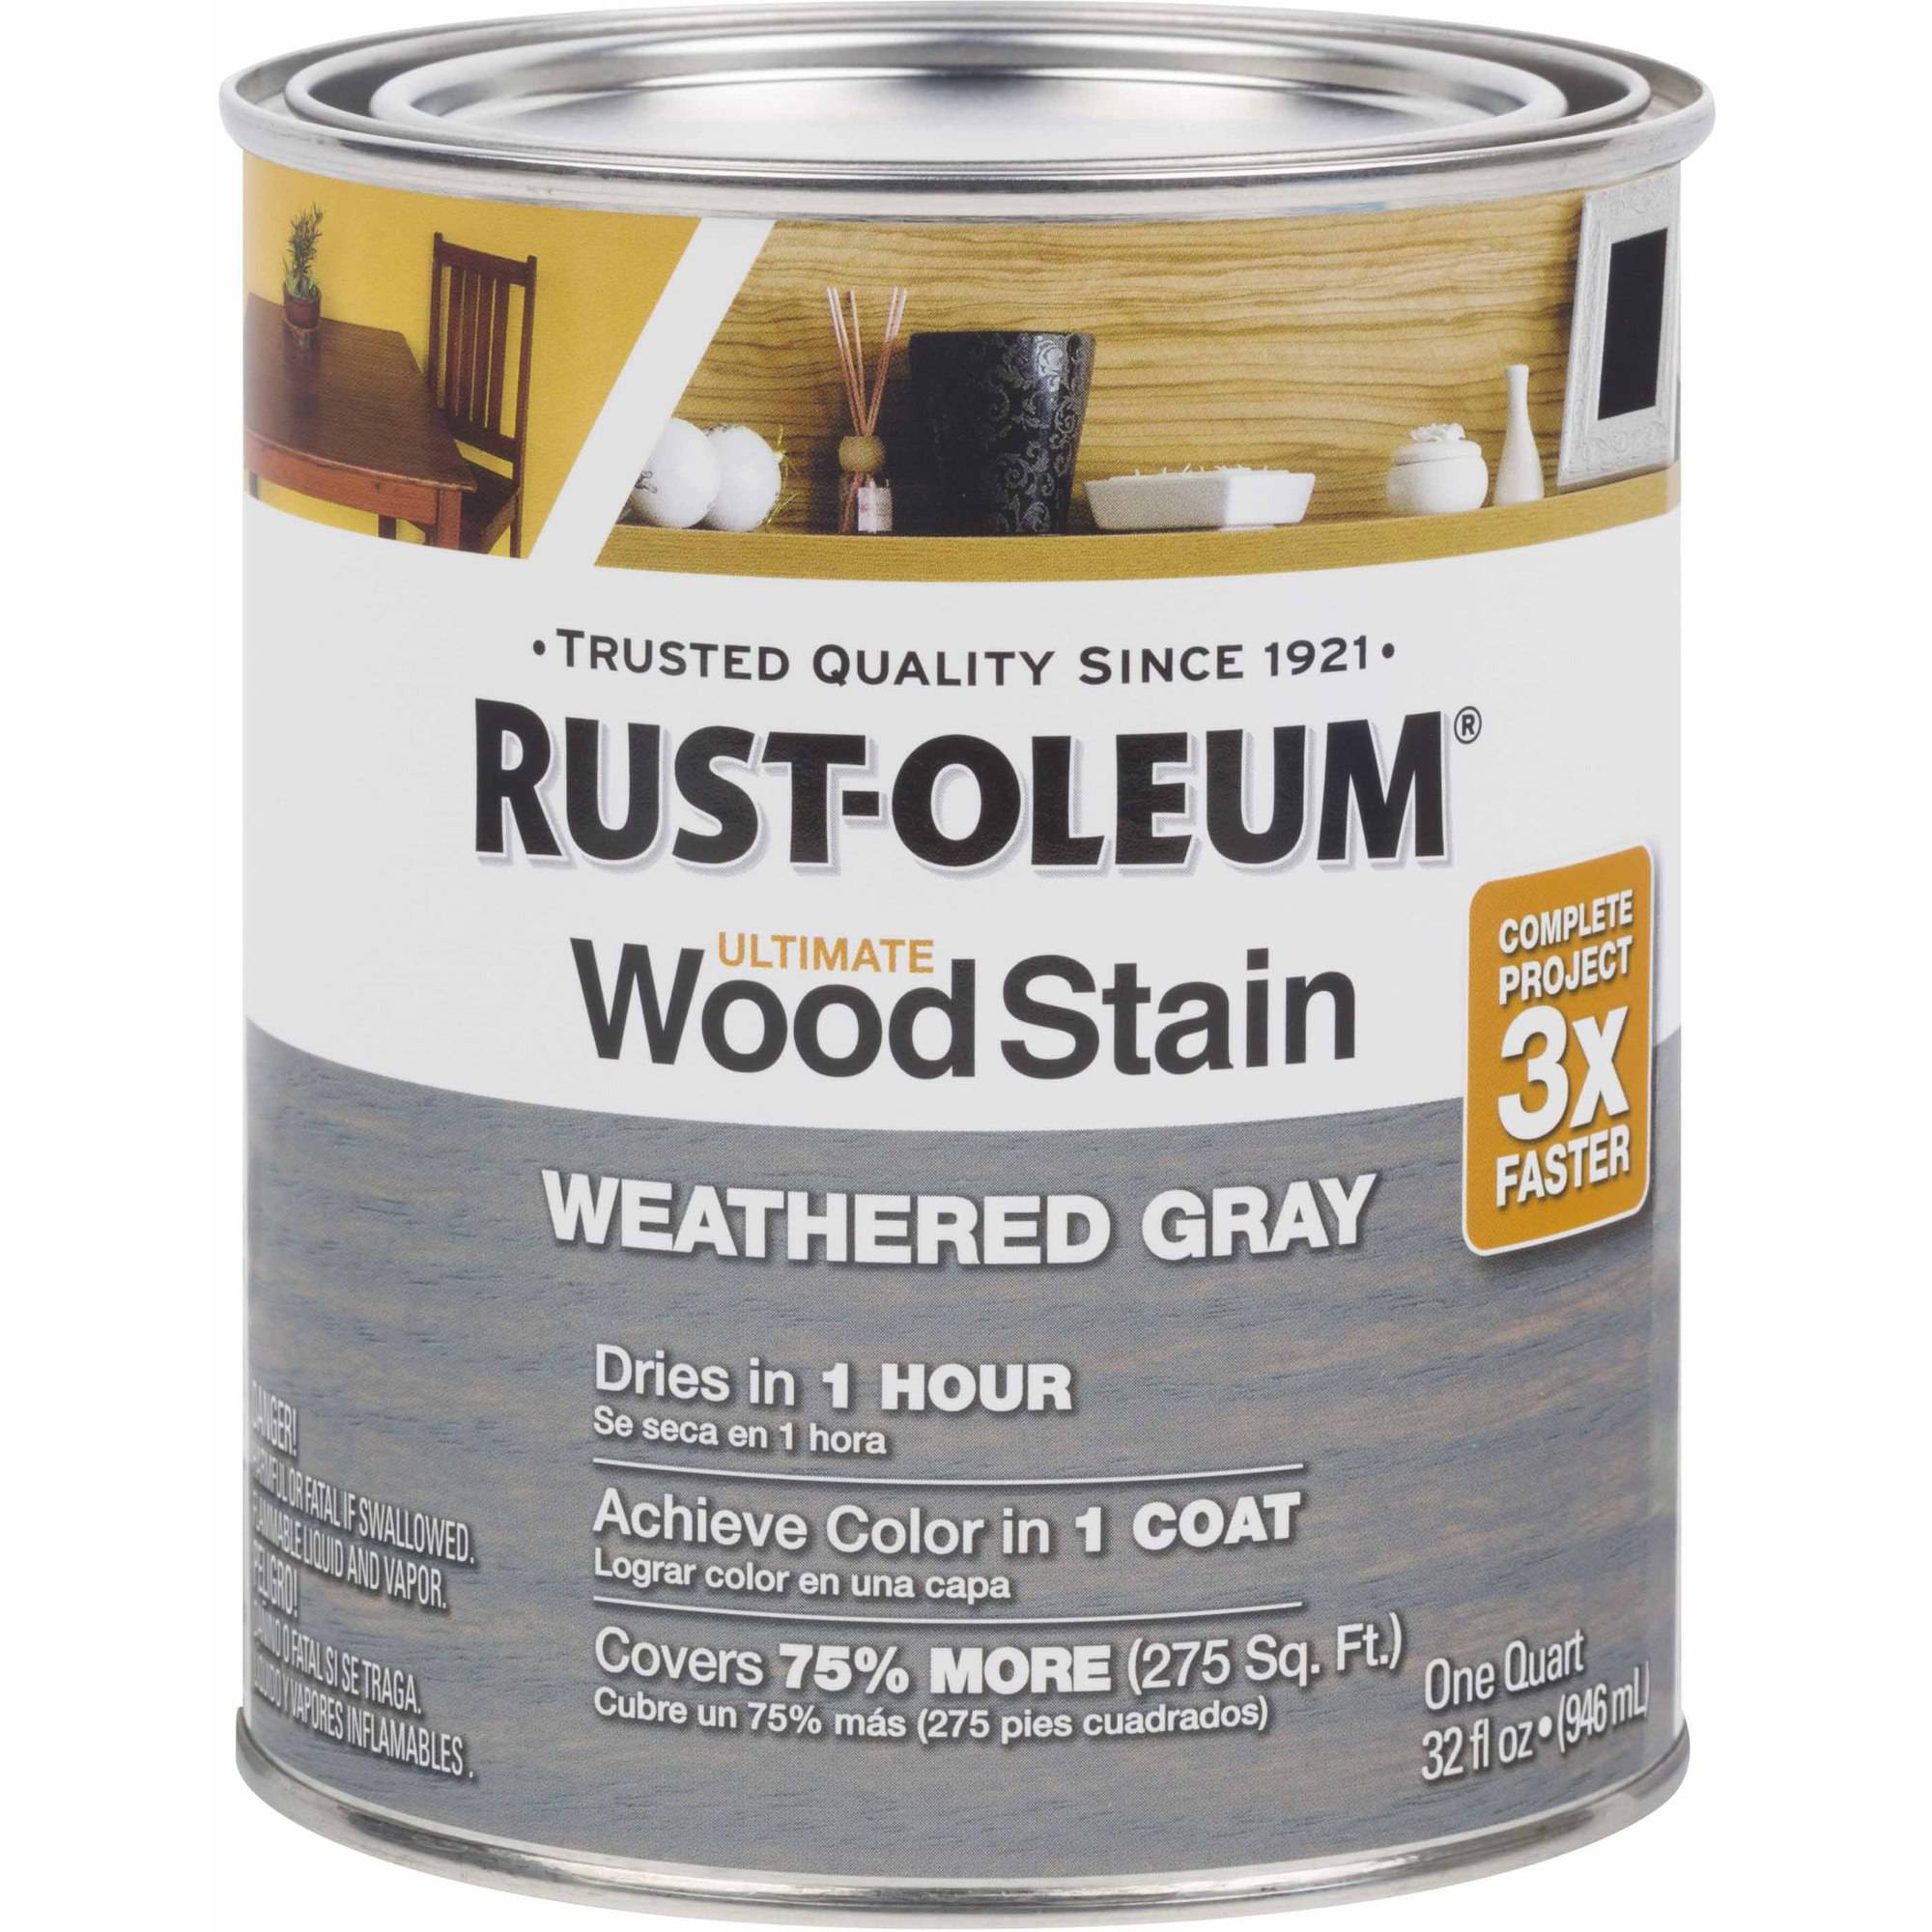 Rust-Oleum Ultimate Wood Stain Quart, Weathered Gray